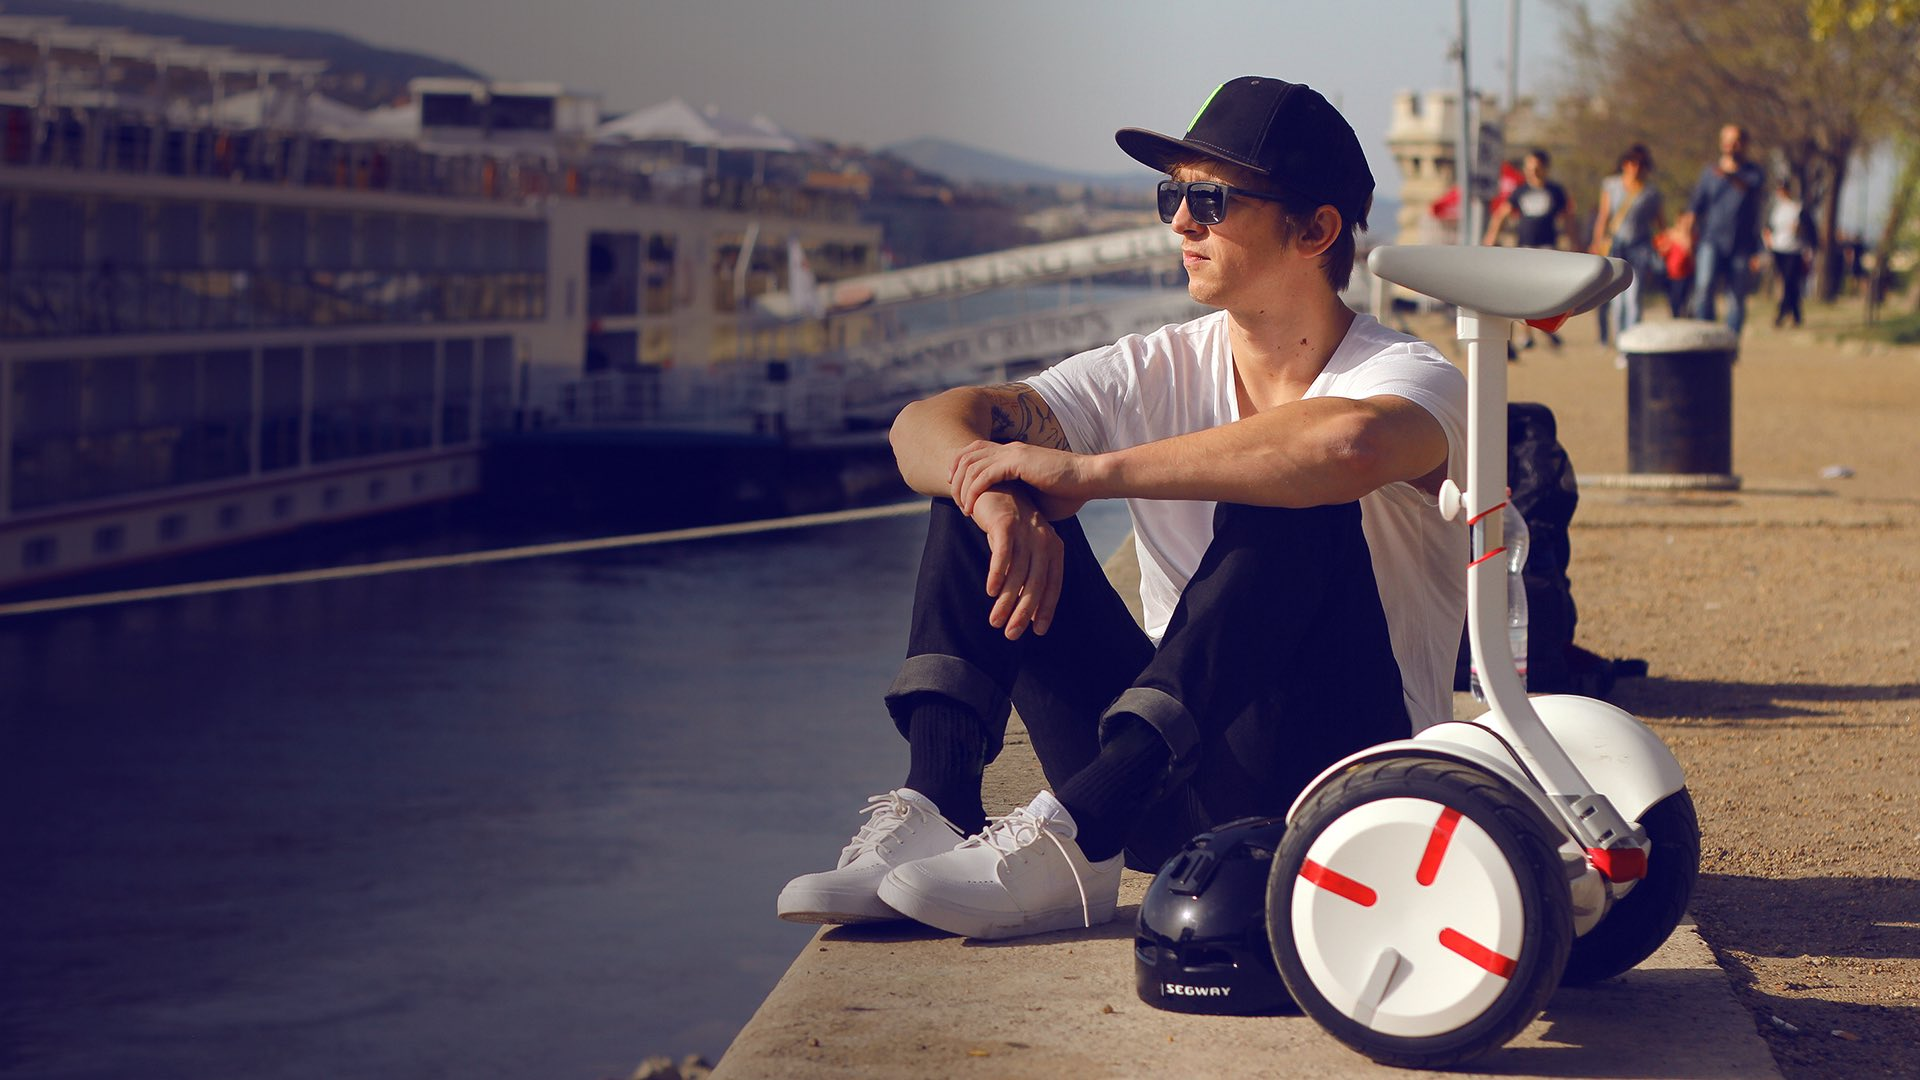 segway hoverboard ninebot minipro